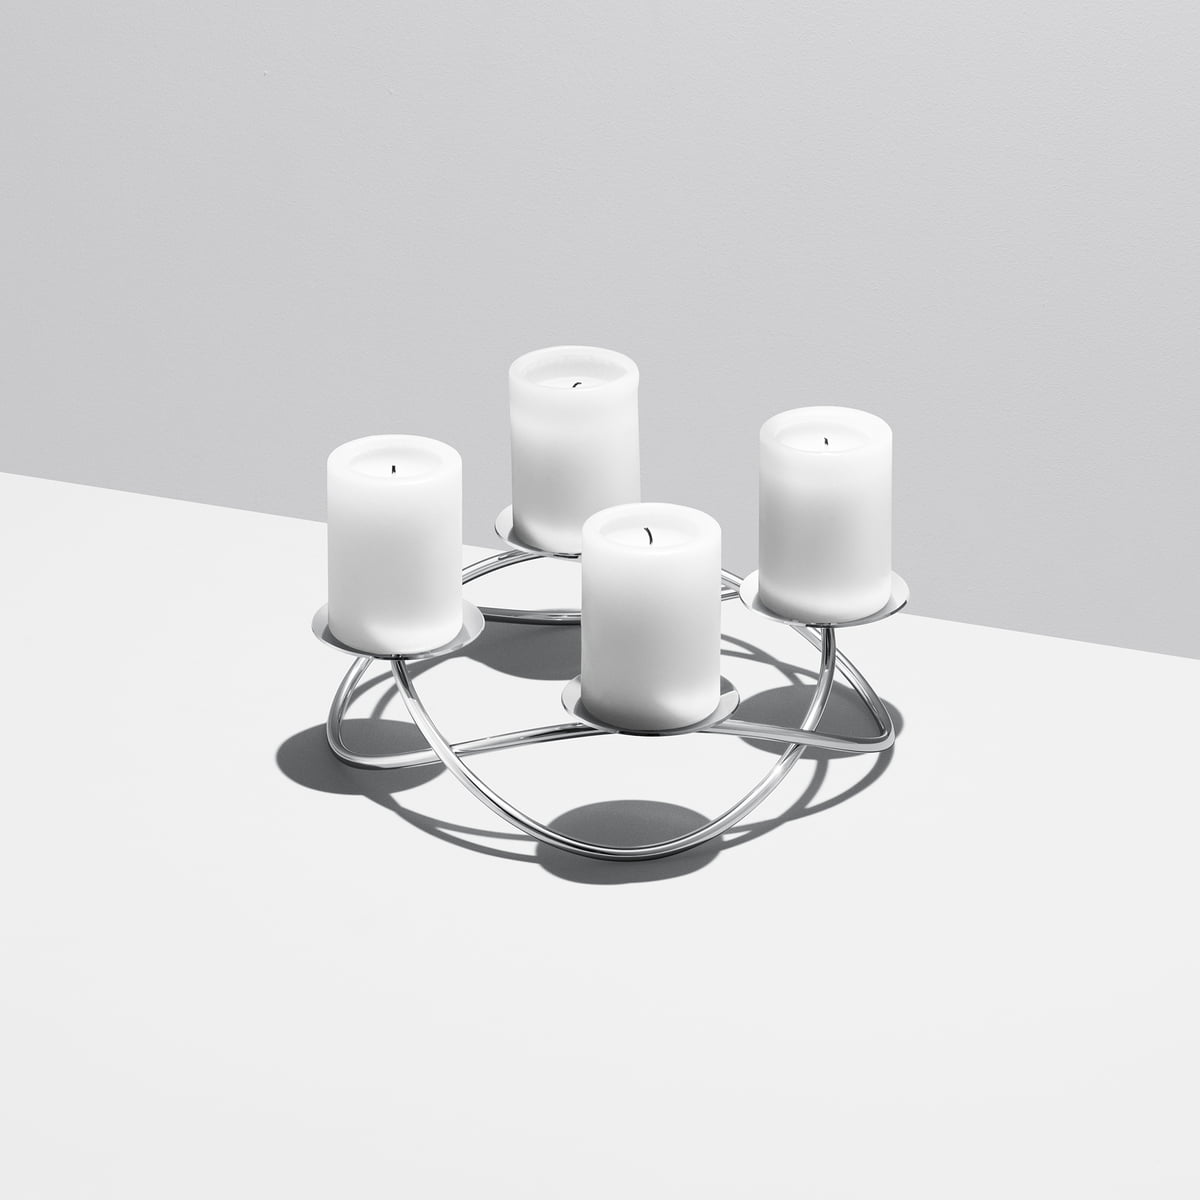 season pillar candleholder by georg jensen. Black Bedroom Furniture Sets. Home Design Ideas